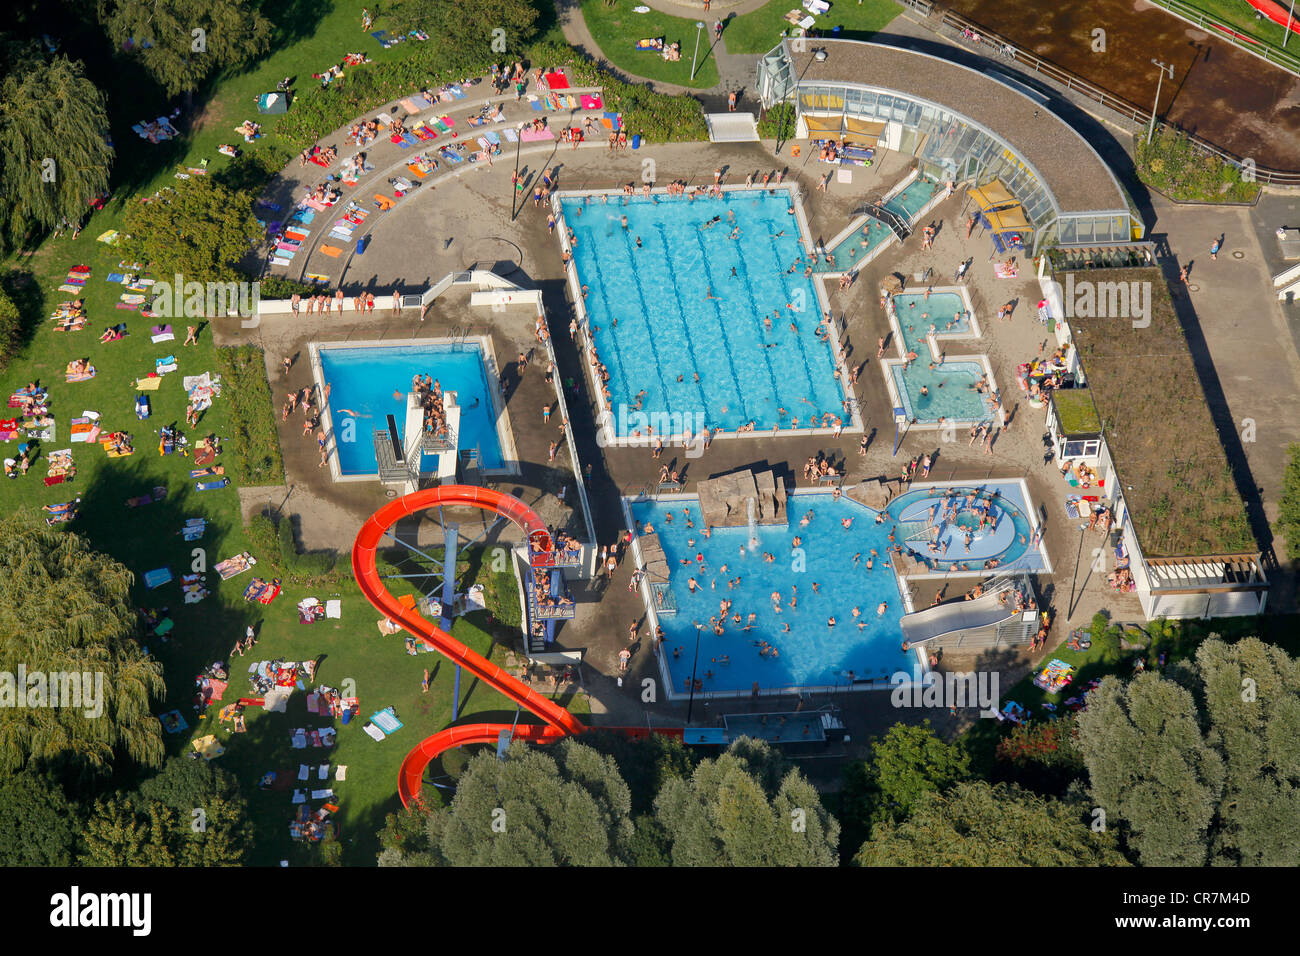 Zwembad Oberhausen Crowded Outdoor Pool Stock Photos And Crowded Outdoor Pool